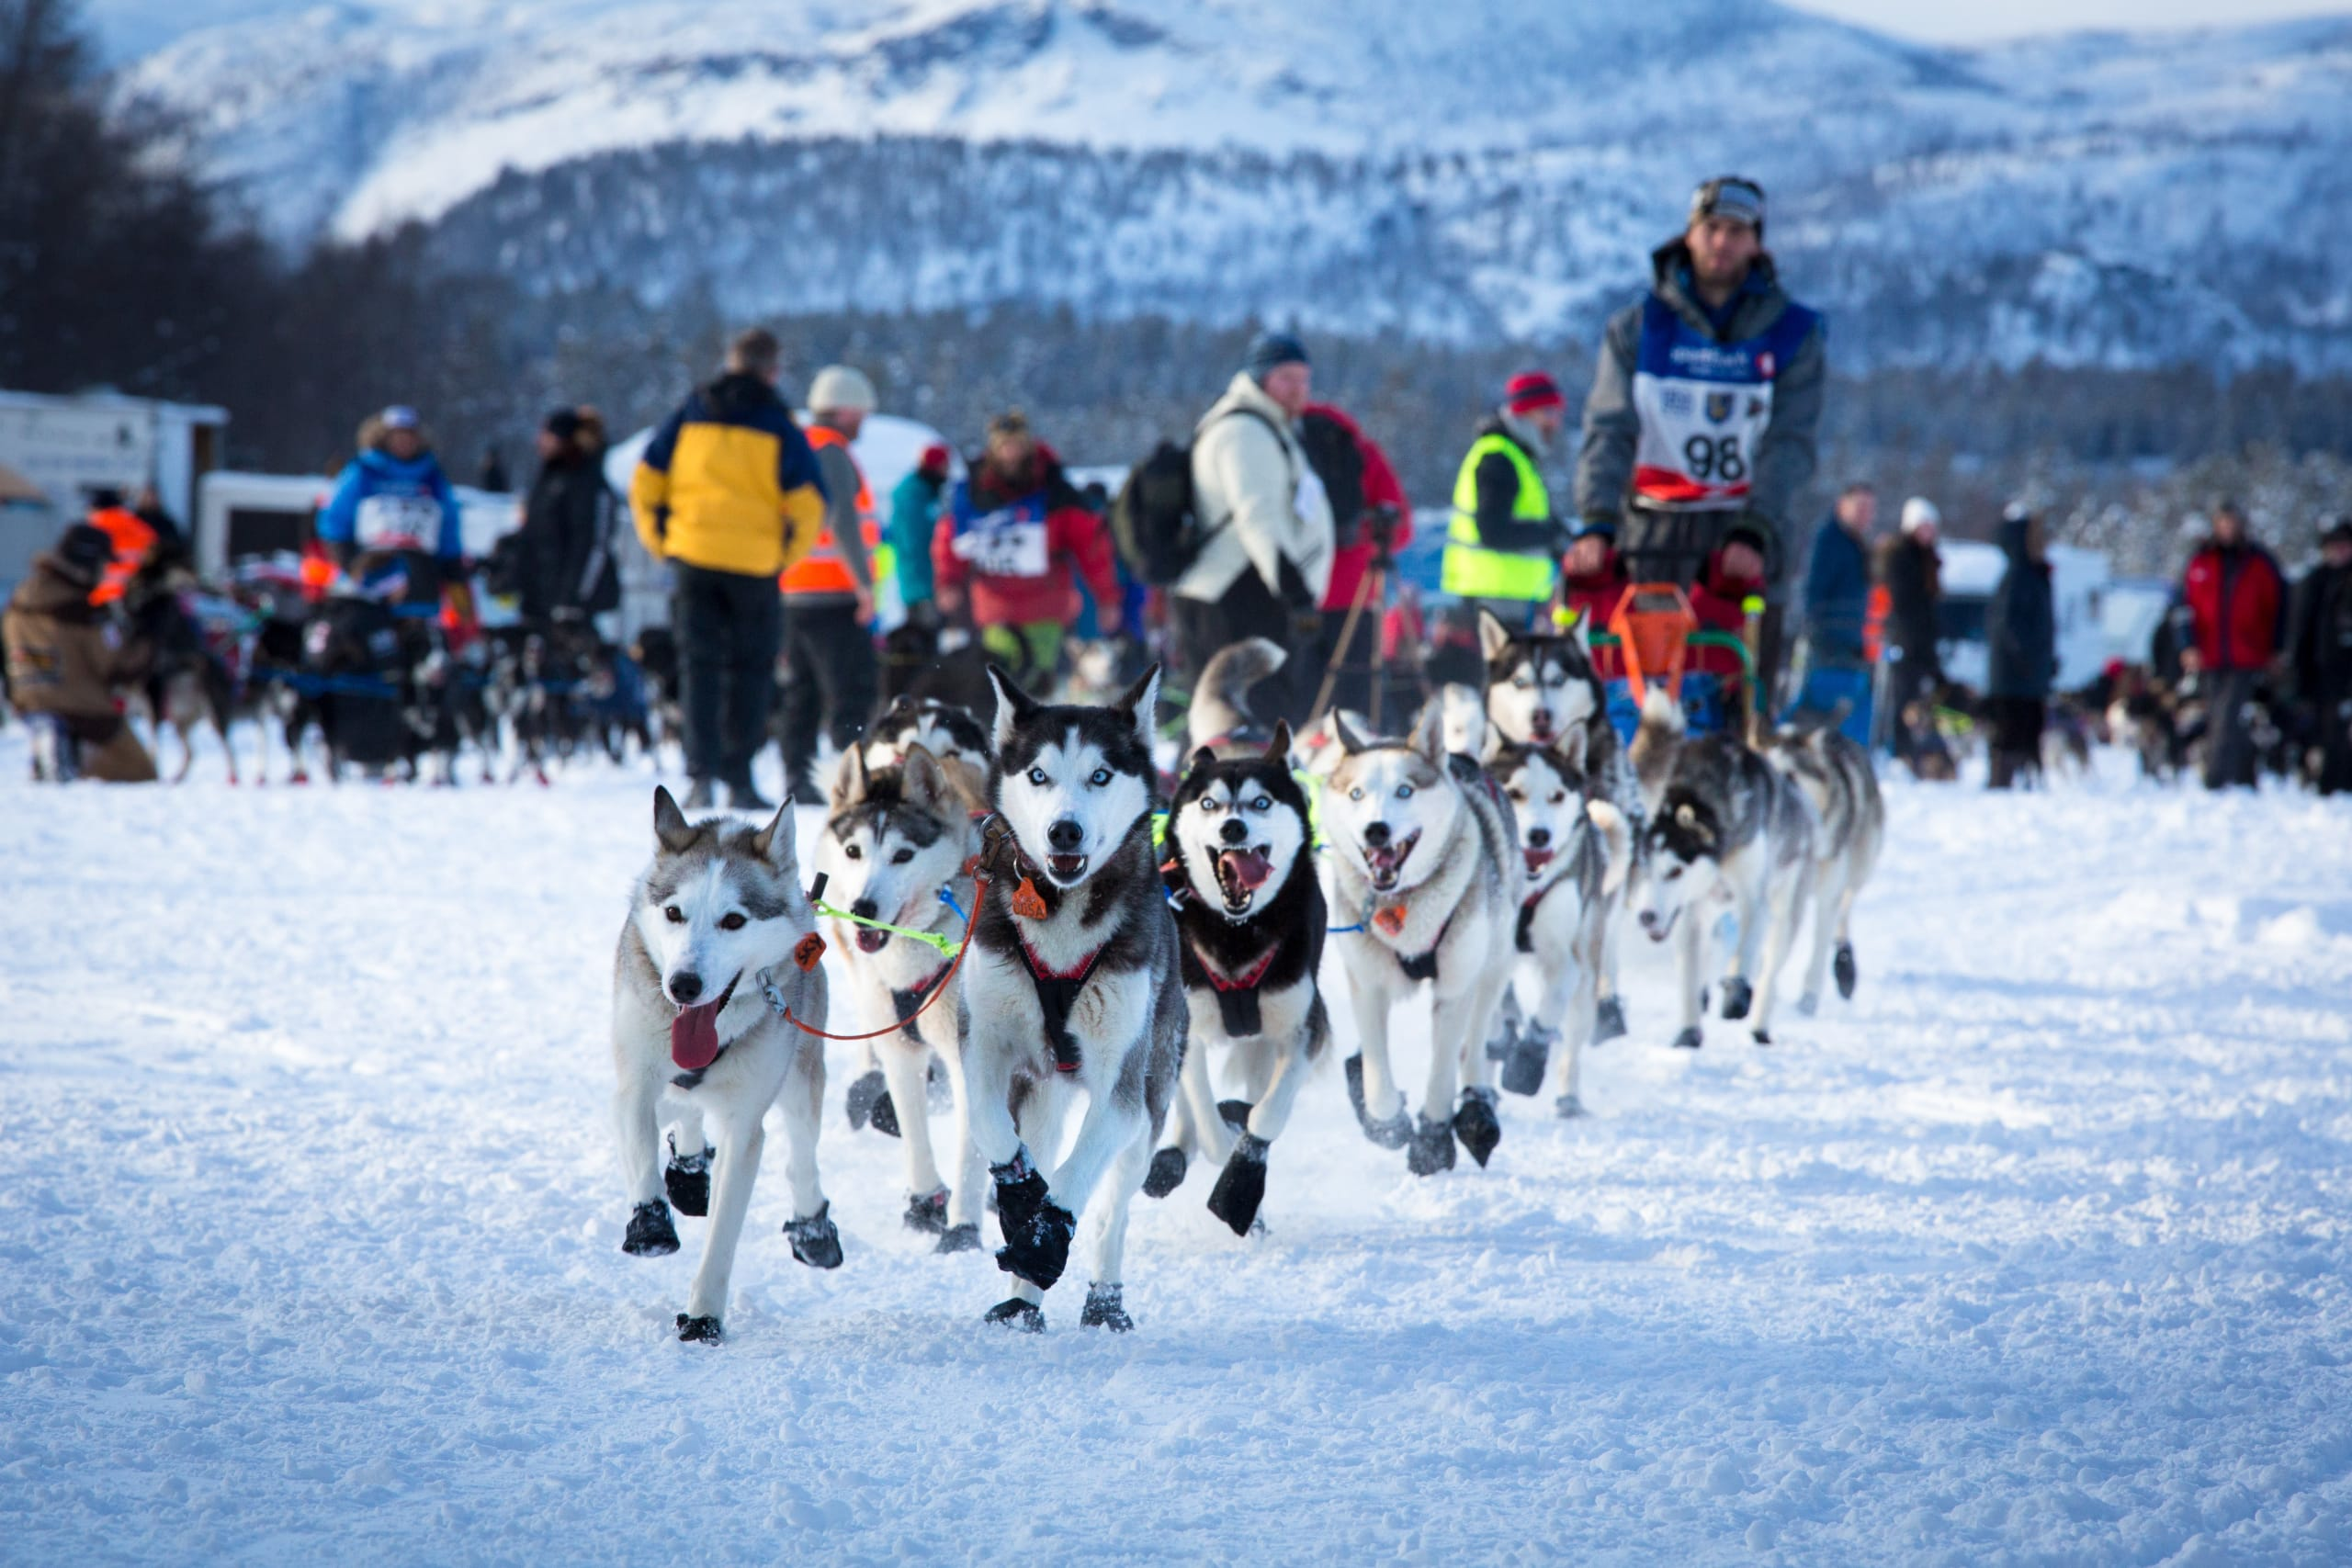 Dog racing at Finnmarksløpet